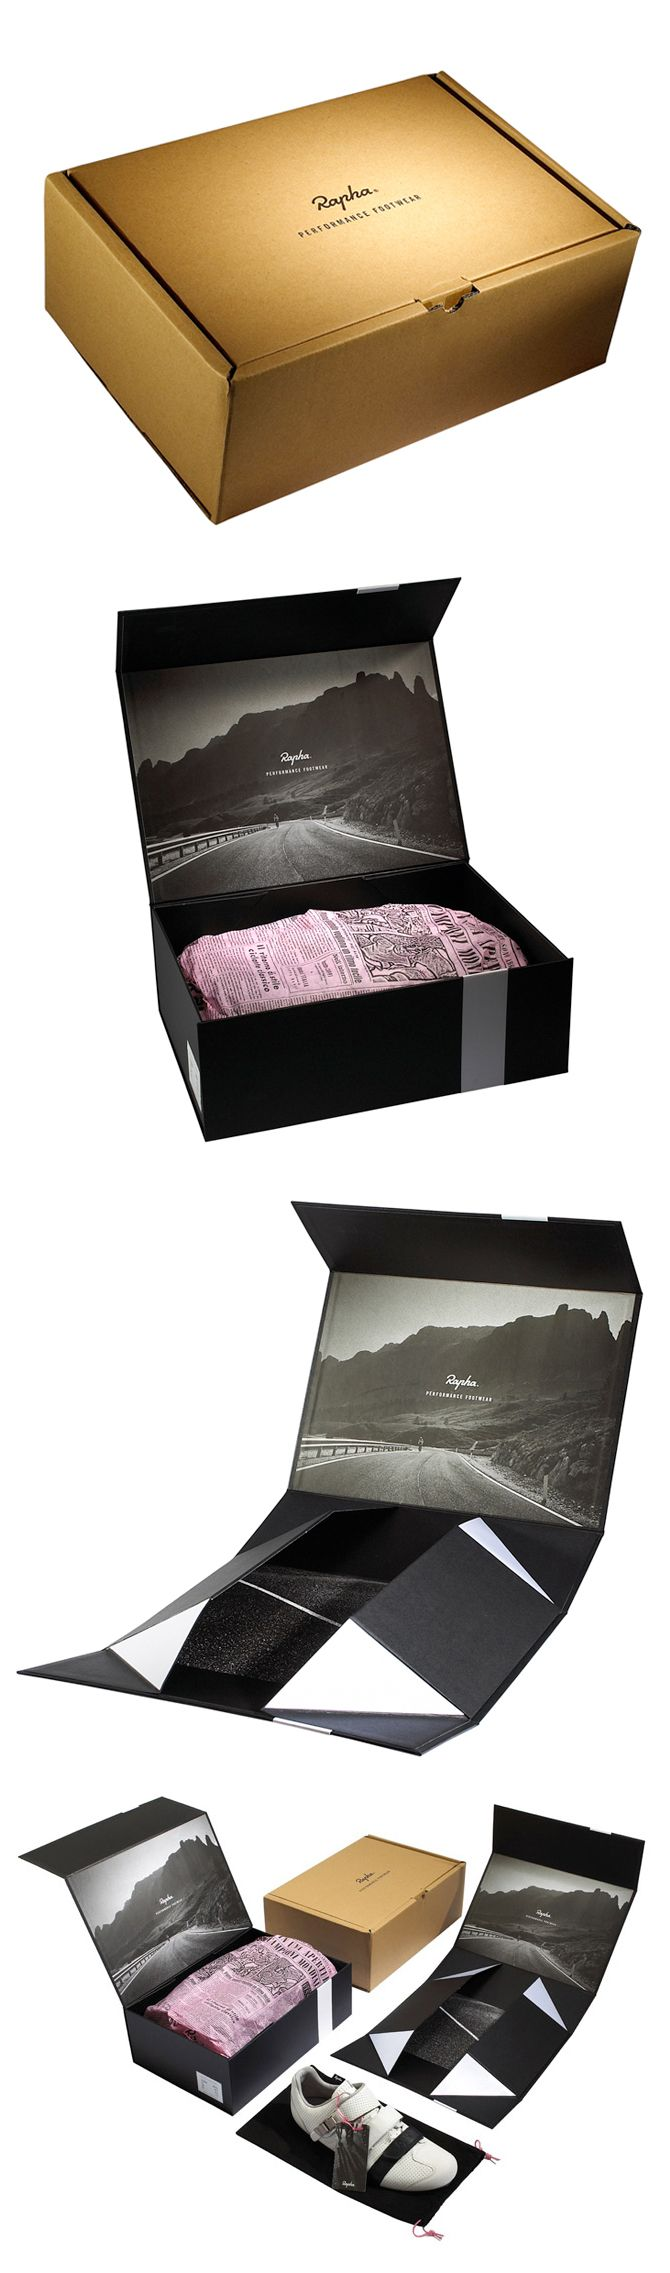 Well these examples of e-commerce packaging have some serious WOW factor